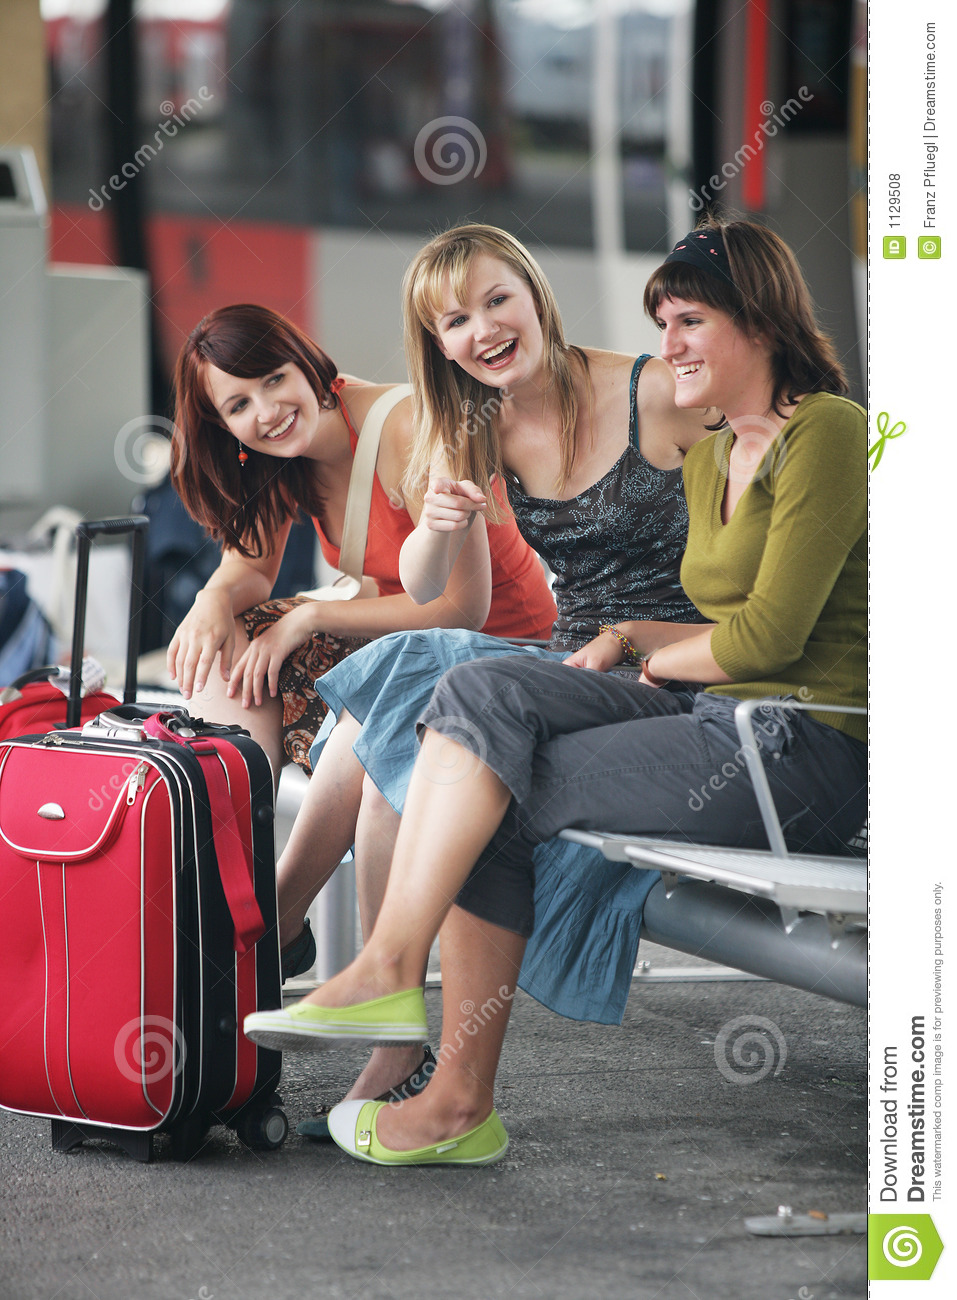 Have fun while travelling